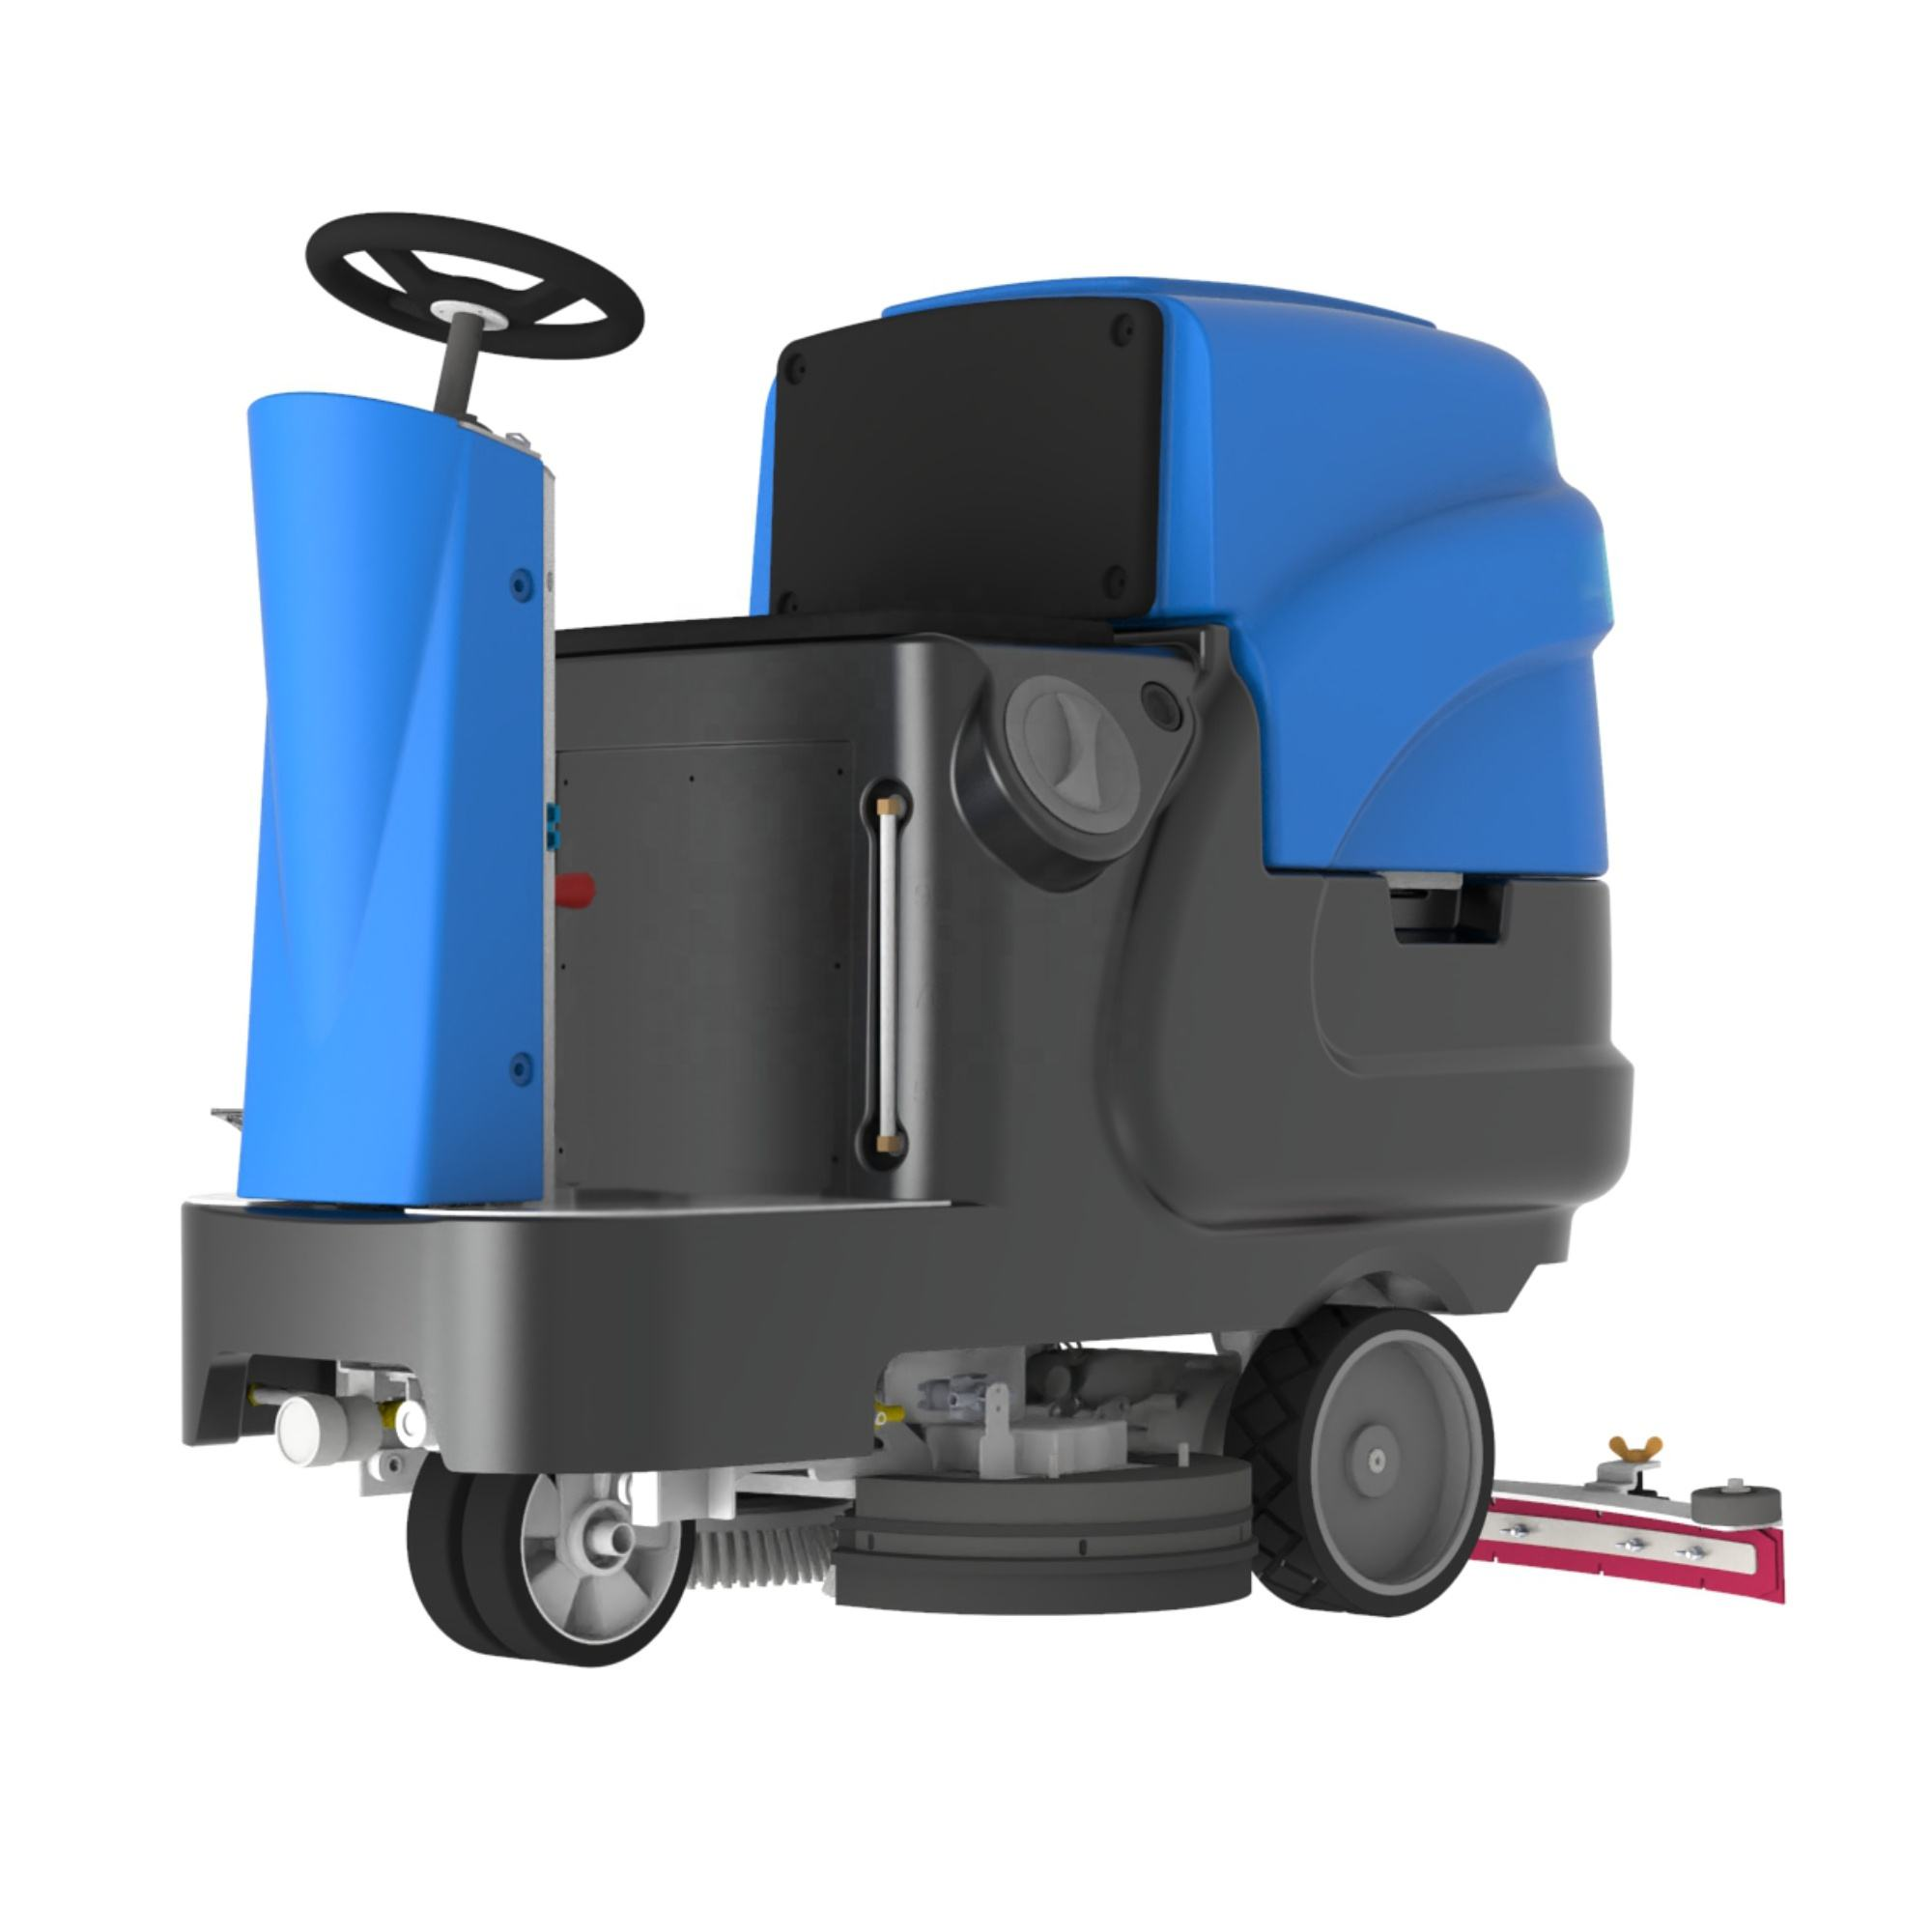 RD660 Automatic Warehouse Ride On Kenya Floor Scrubber